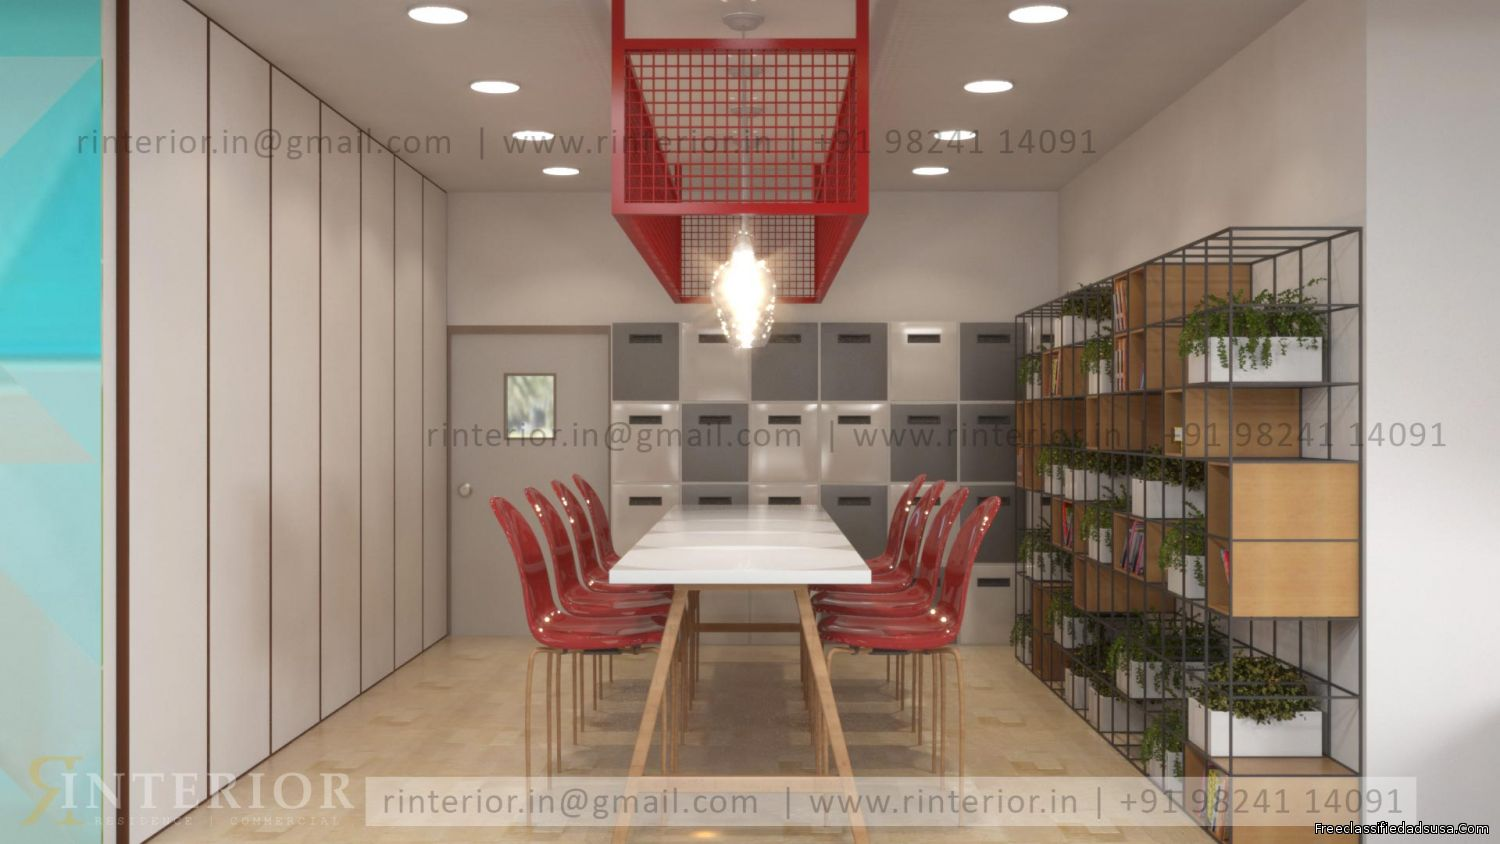 Best Decorate Office Interior in India by RInterior